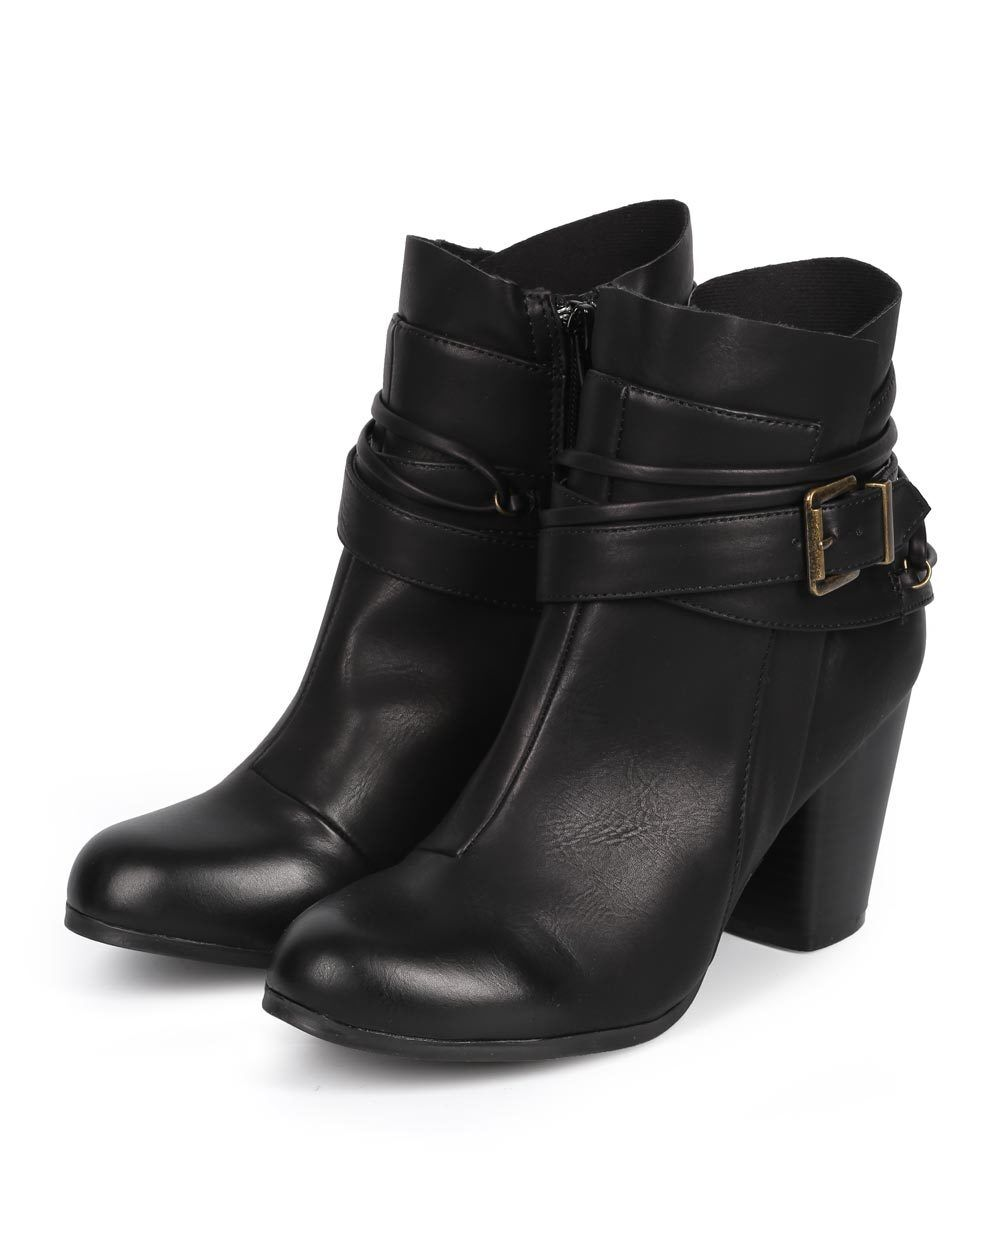 New Women Qupid Sake-49 Leatherette Strappy Chunky Heel Zip Riding Bootie Size